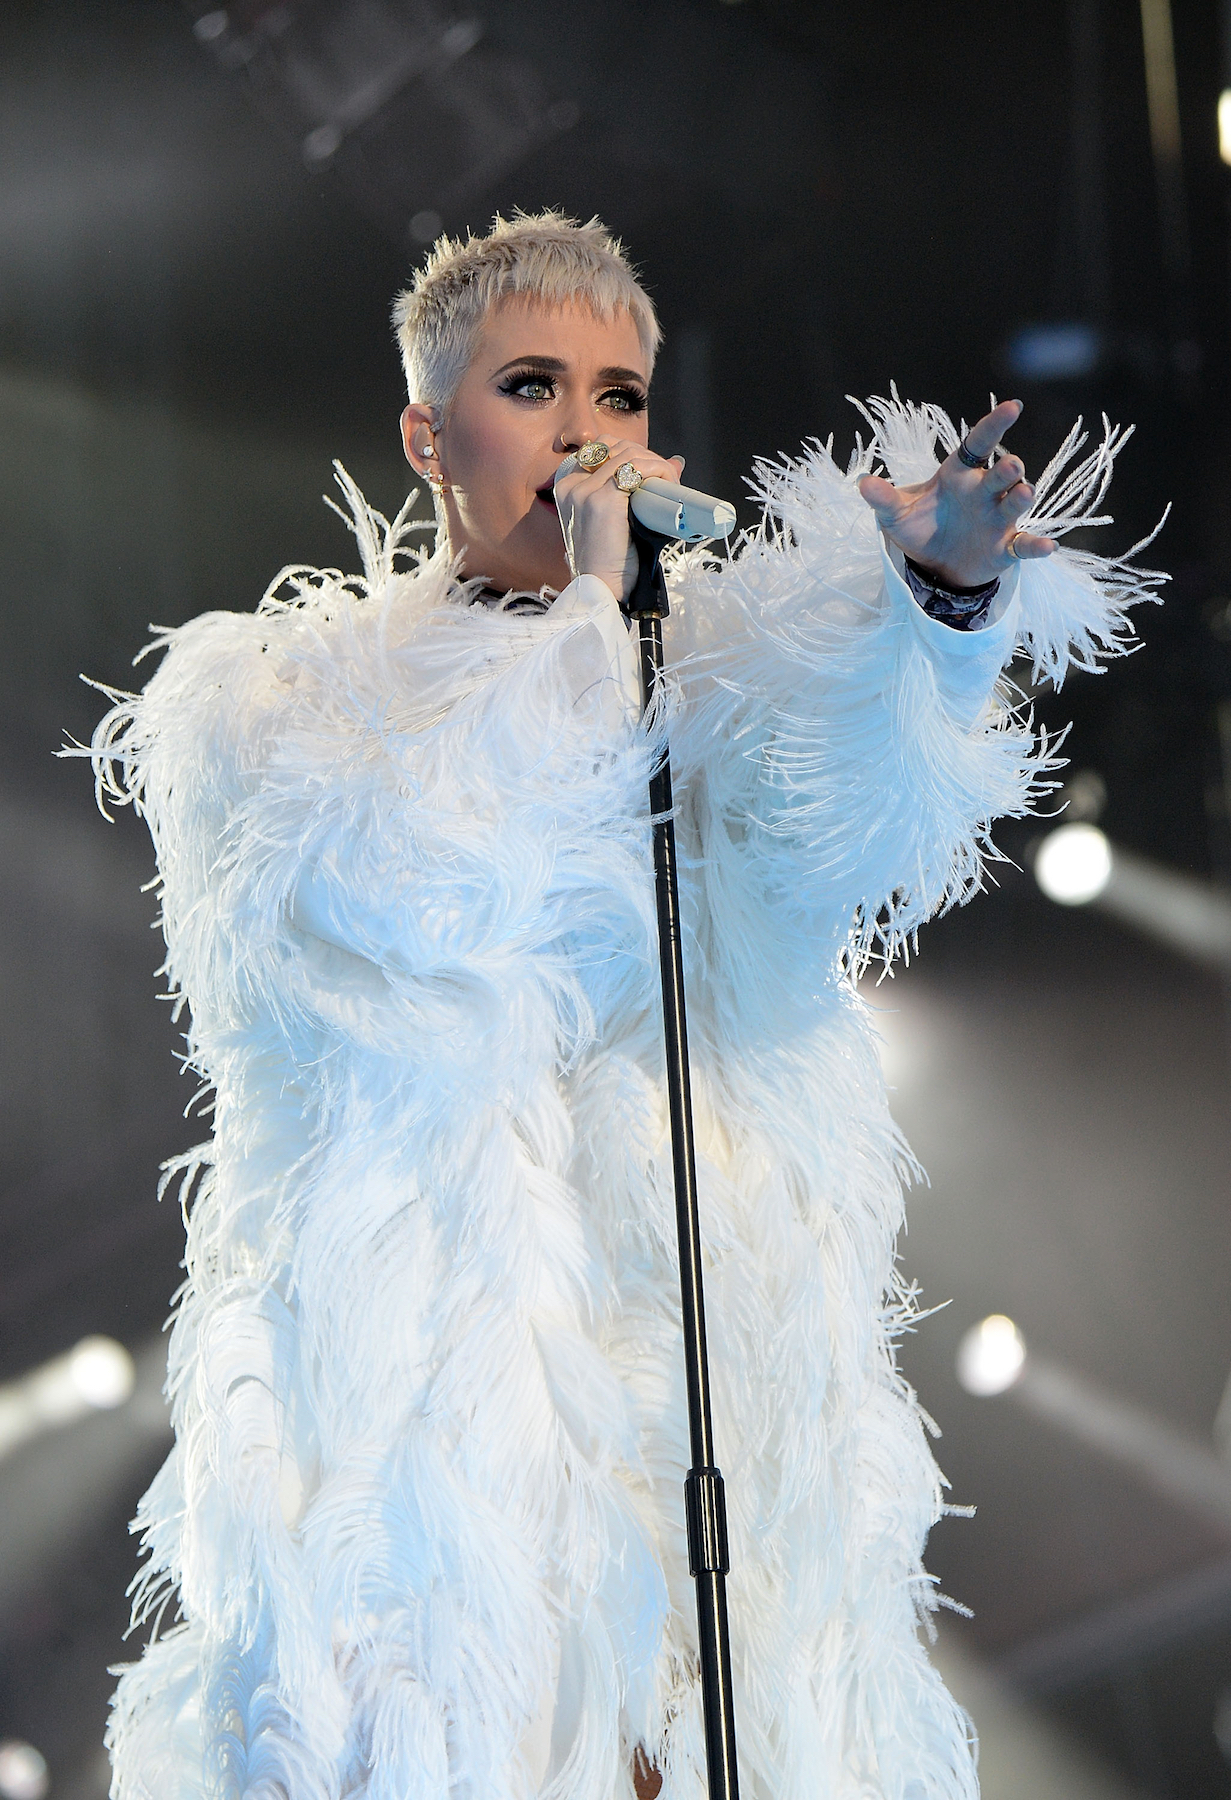 Katy Perry Sings Powerful Version of 'Part of Me' in Manchester